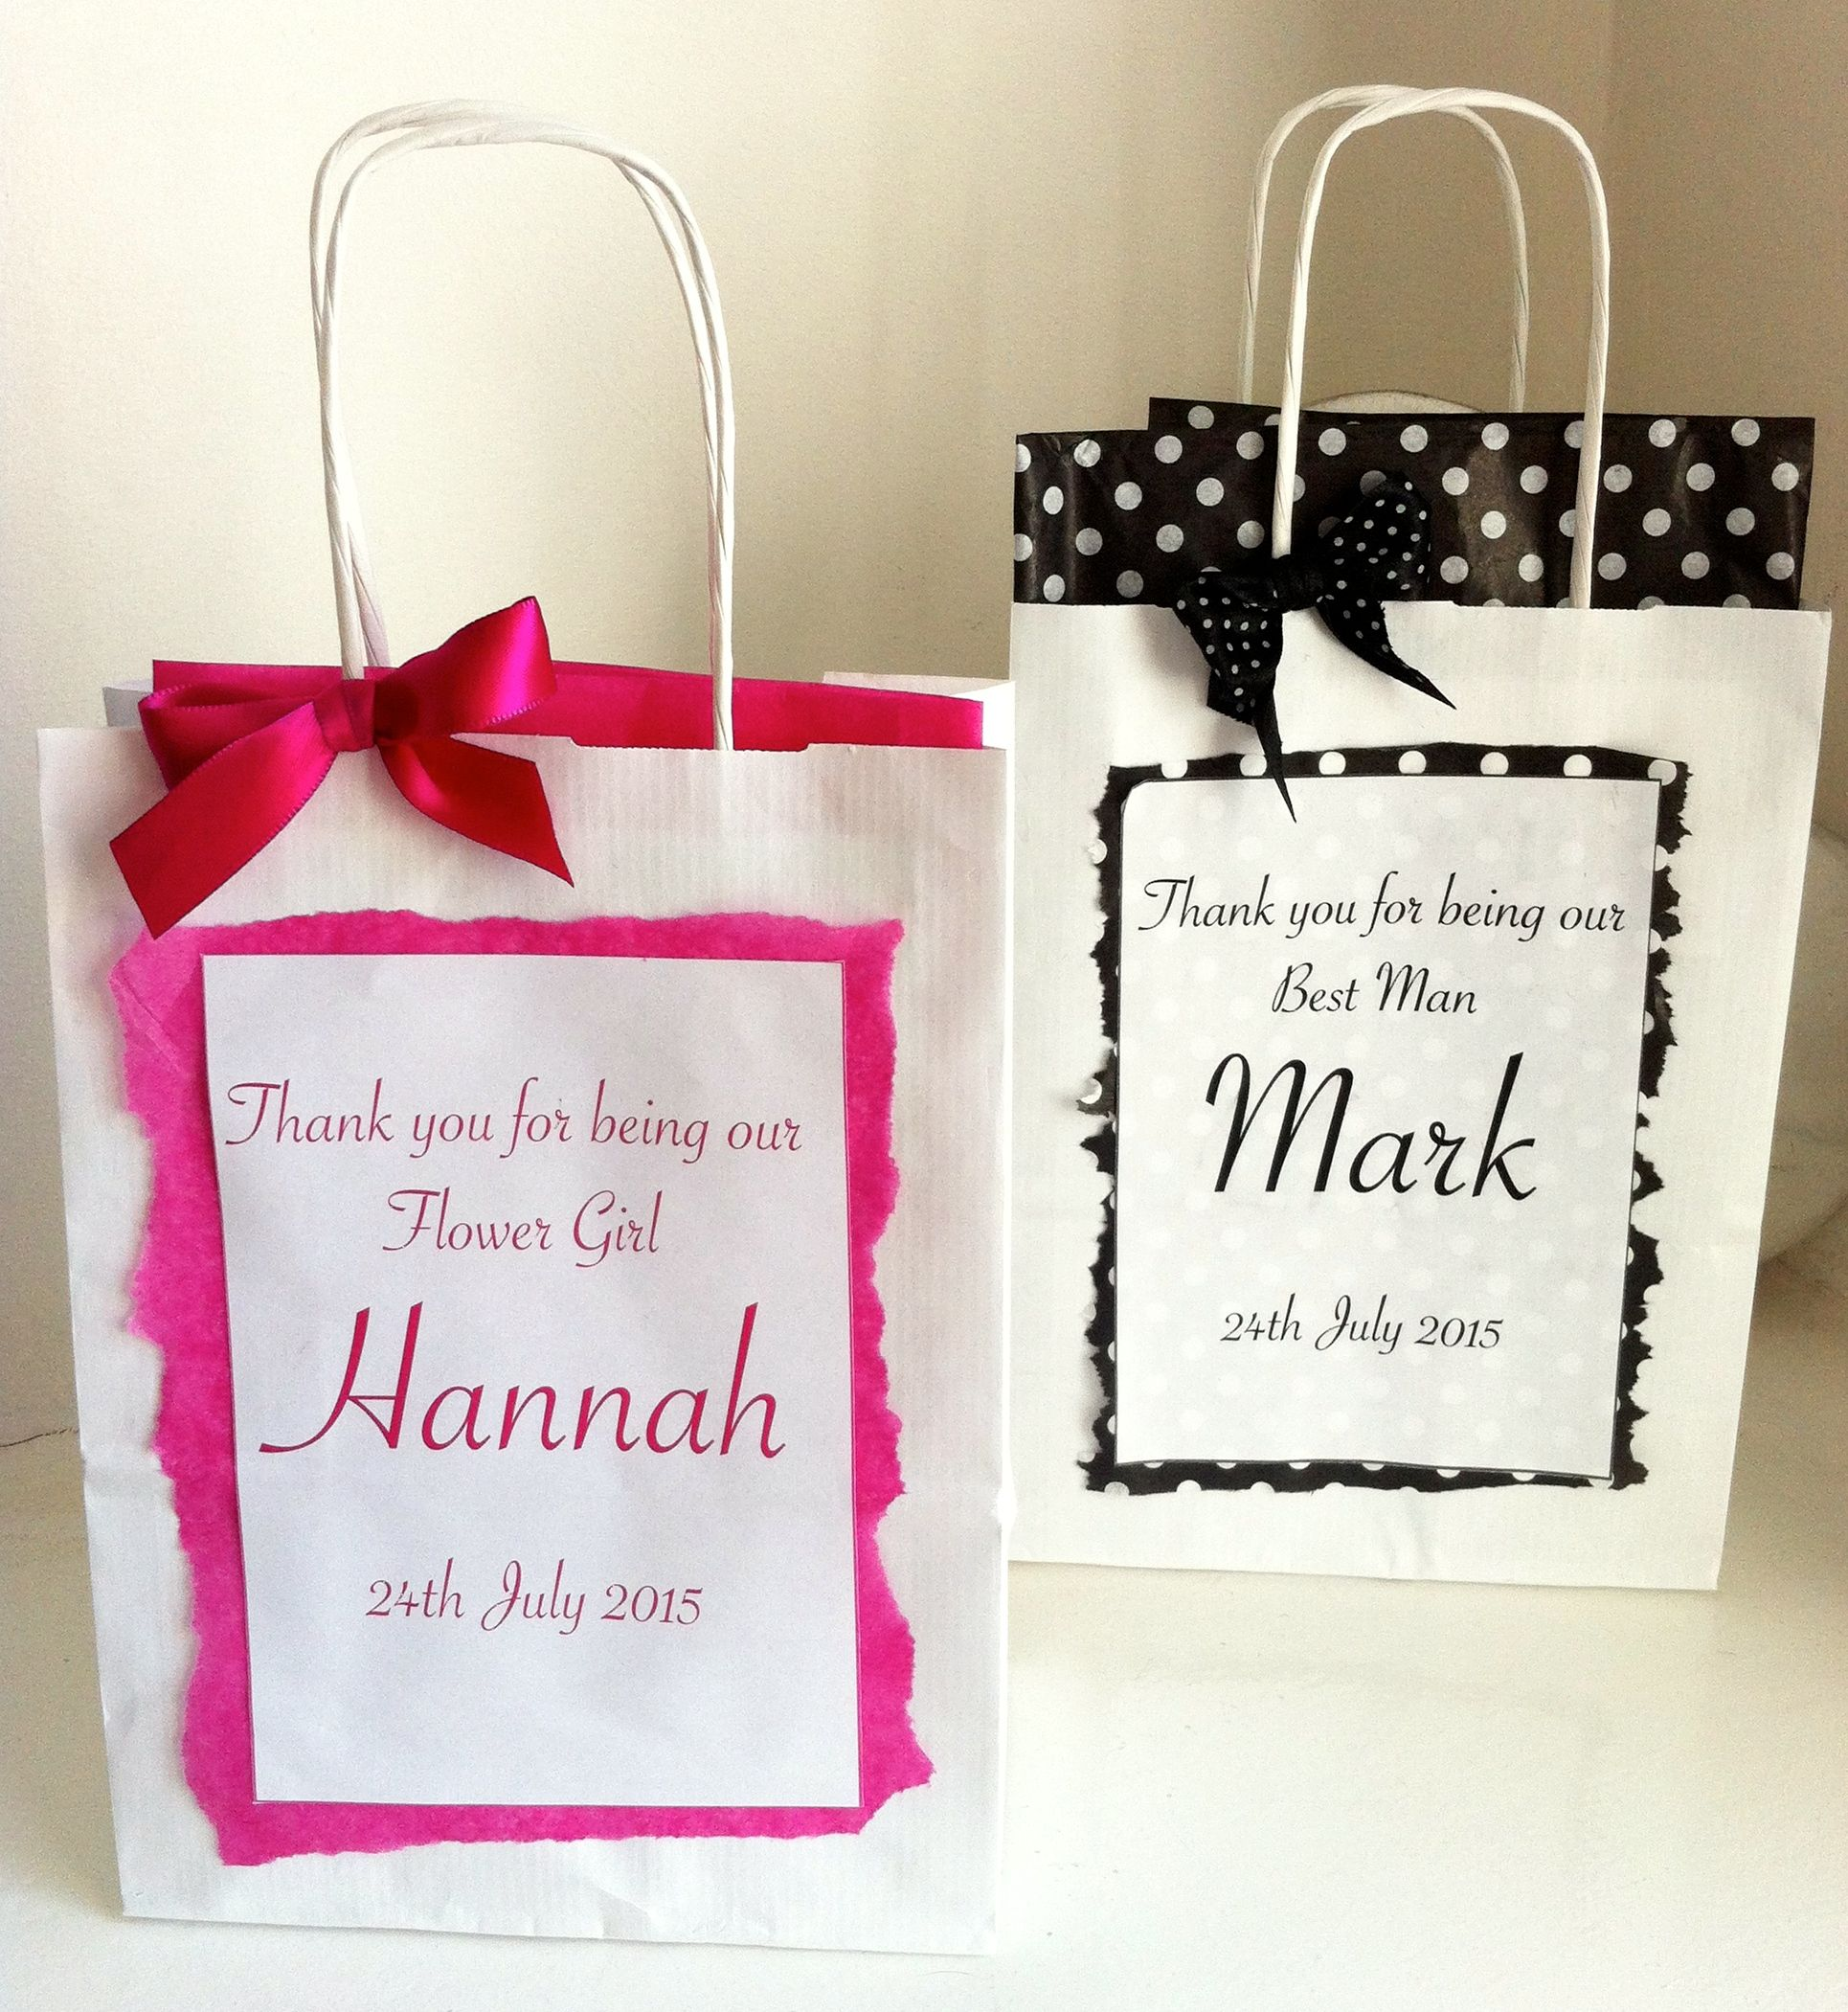 Personalised Paper Gift Bags - Thank you for being our Flower Girl, Thank you for being our Best Man, Thank you for being our Bridesmaid, Thank you for ...